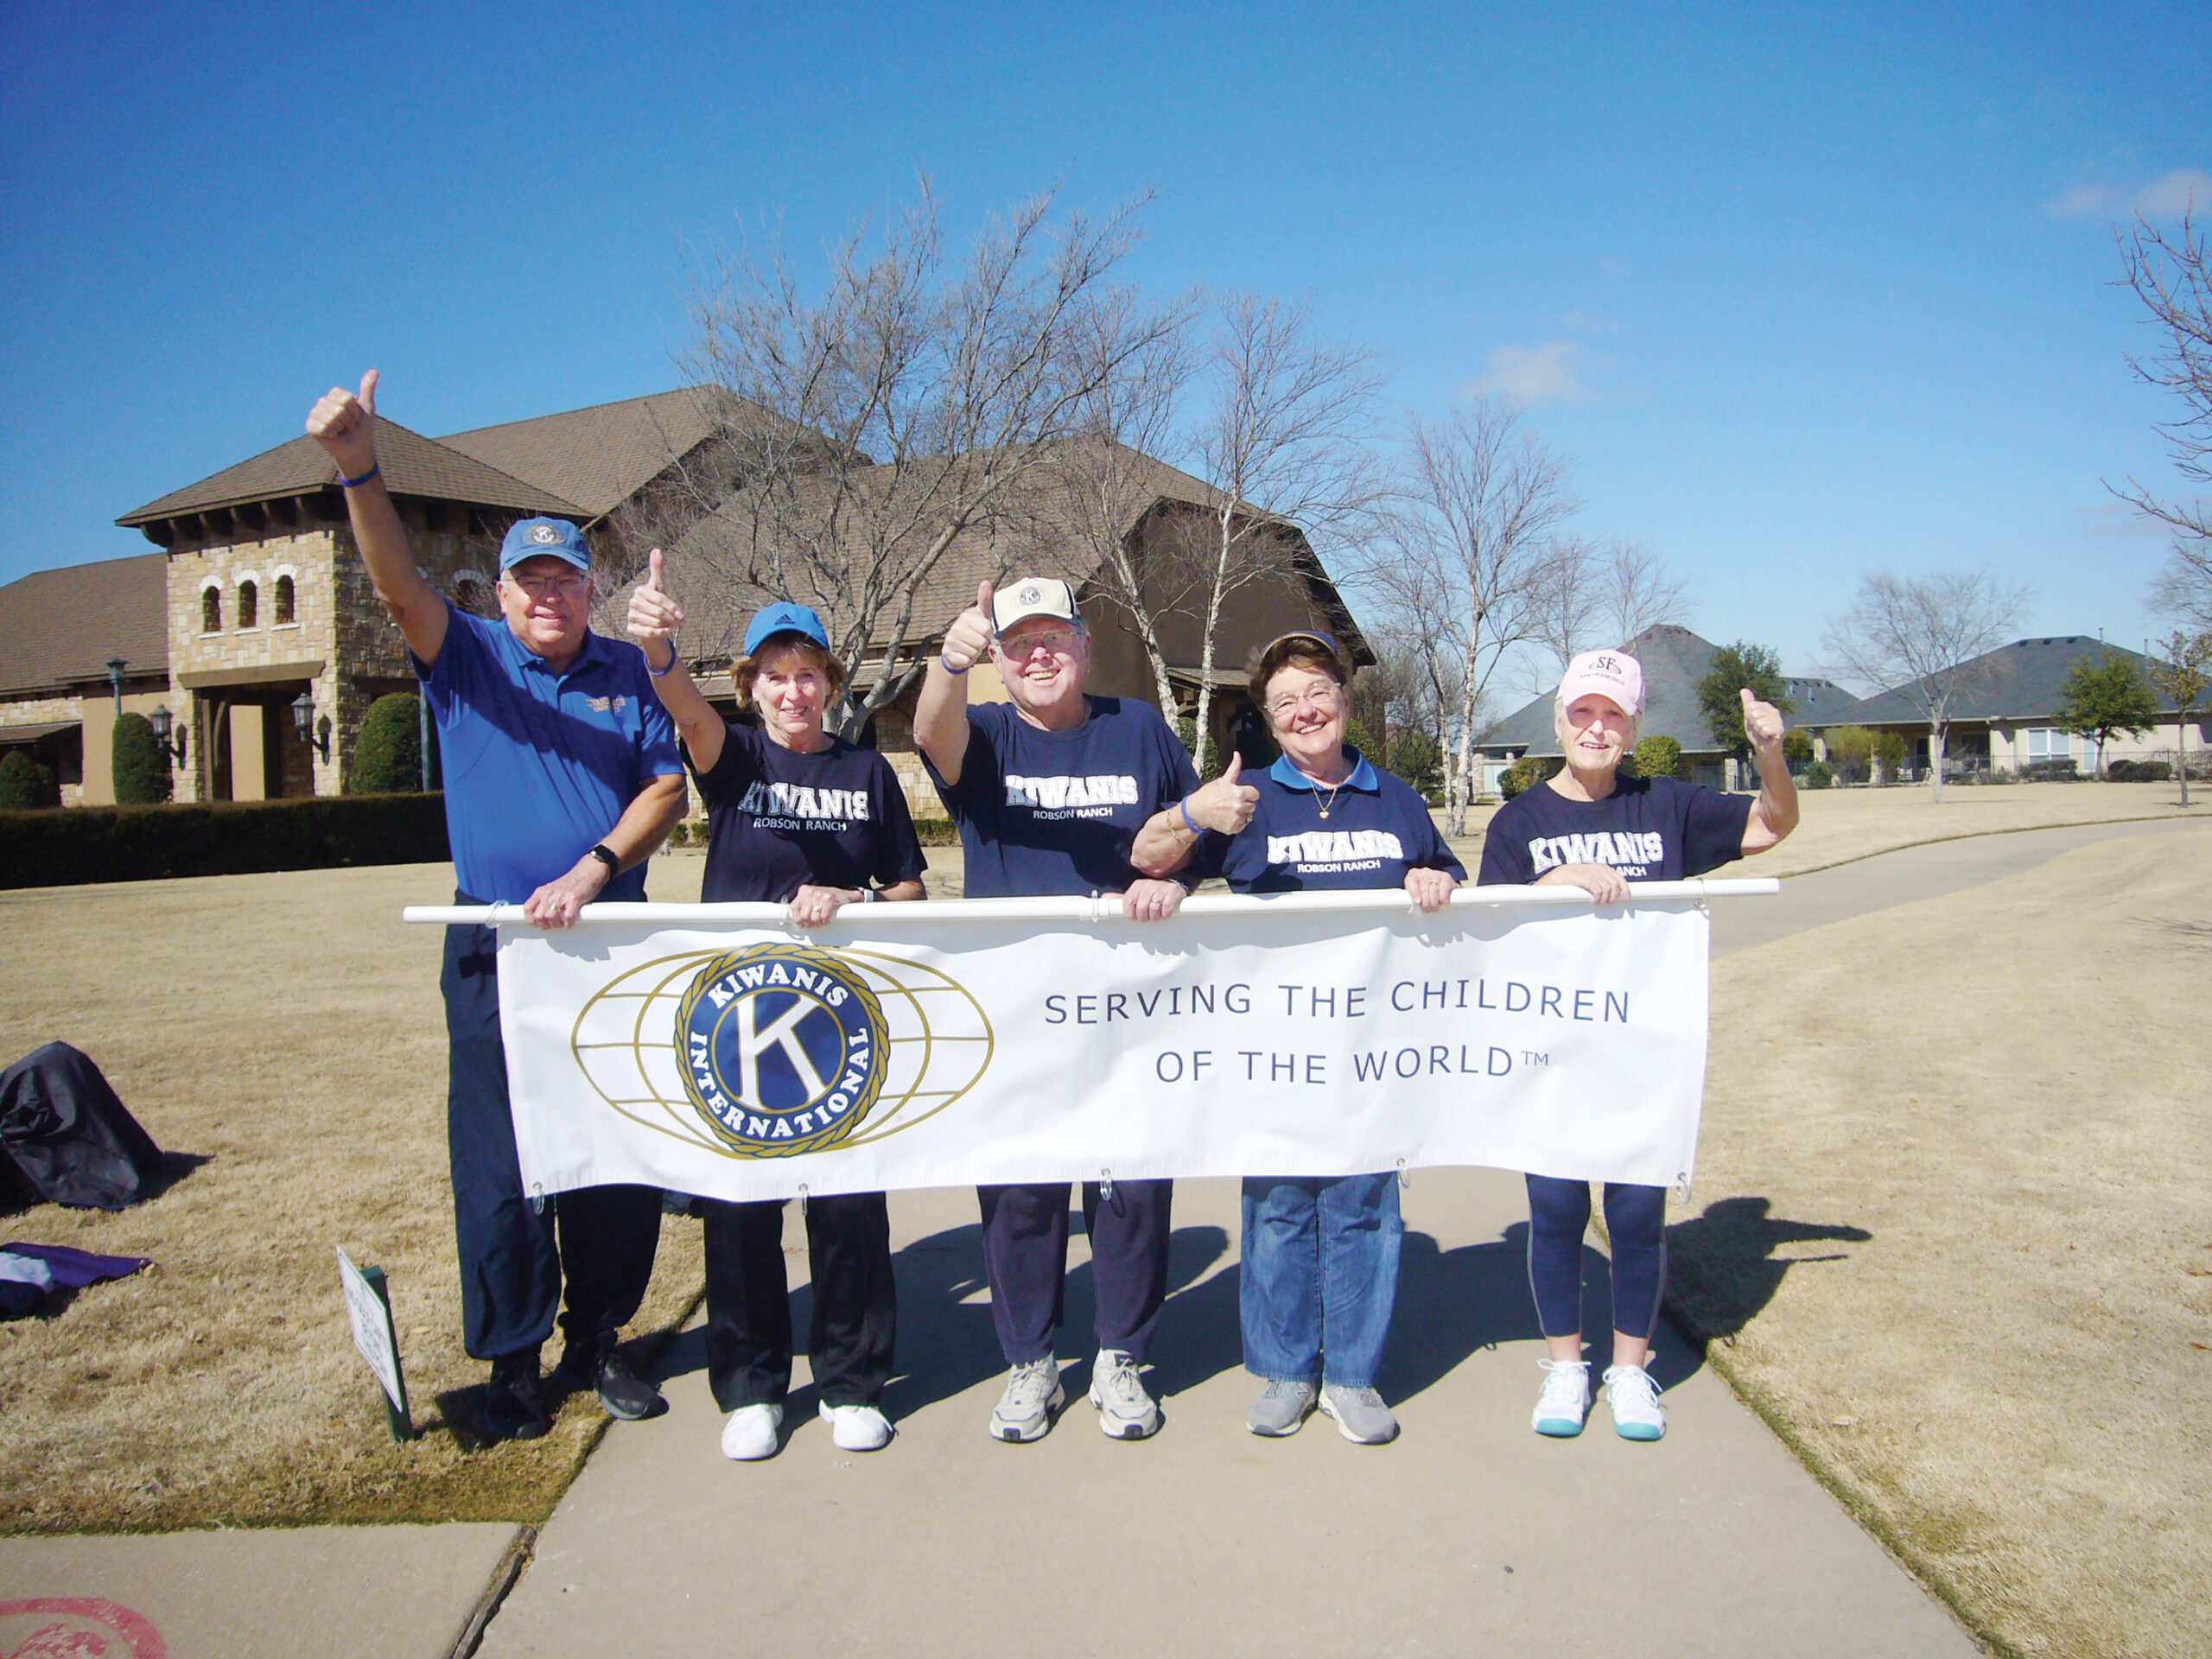 Roy Meyer, Chris Mershon, Jim and Susan Galbraith, along with Pat Hamblin, are ready to walk the two miles Kiwanis CAP Walkathon on April 10, 2021.